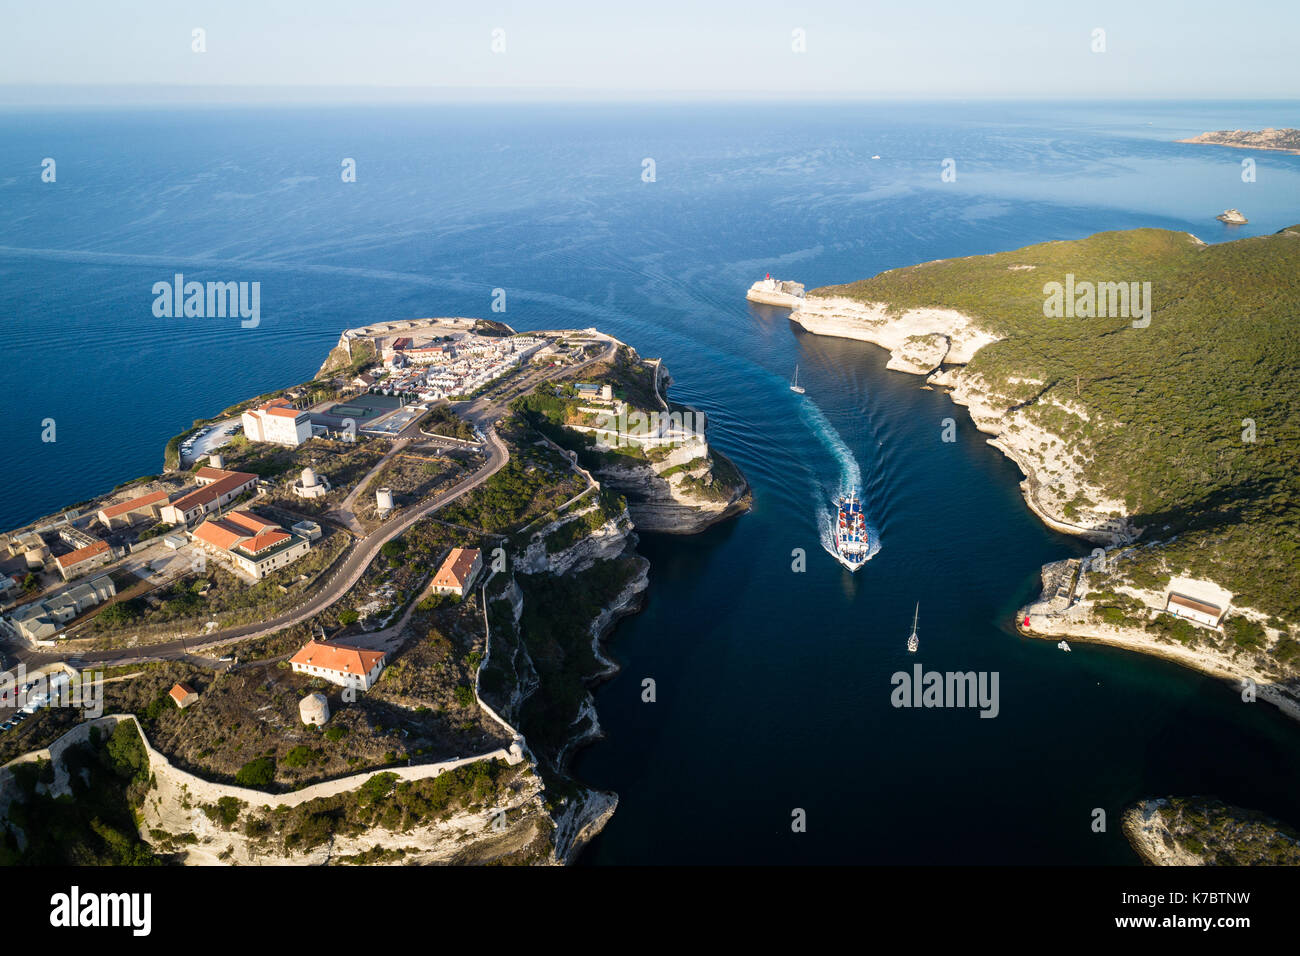 Historical center of city Bonifacio and entrance into port, Corsica, France - Stock Image